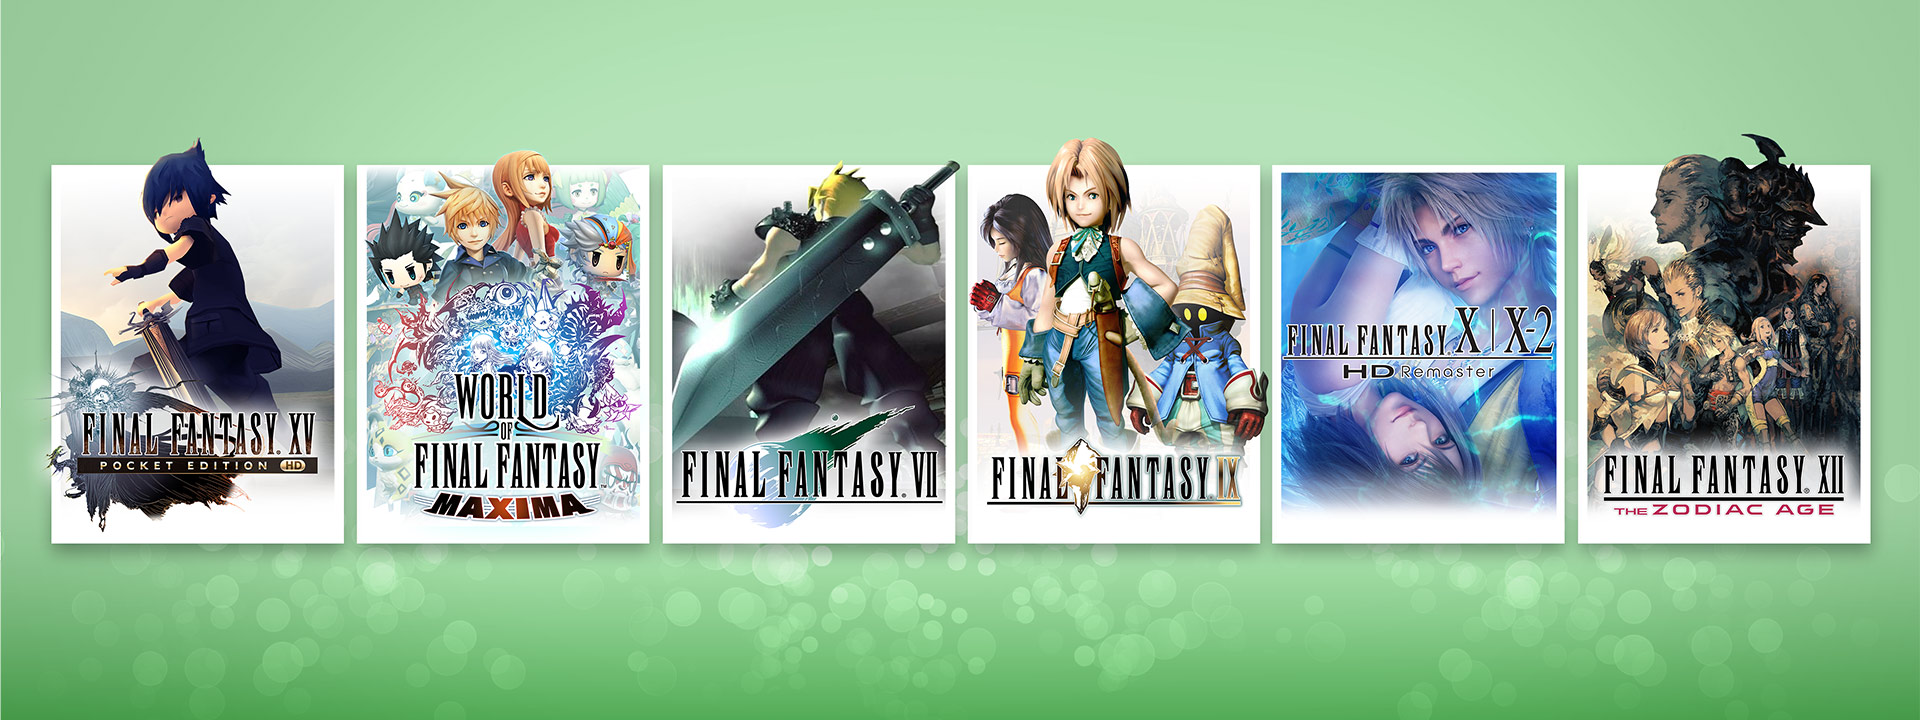 Pakkausten kannet: FINAL FANTASY XV POCKET EDITION HD, WORLD OF FINAL FANTASY MAXIMA, FINAL FANTASY VII, FINAL FANTASY IX, FINAL FANTASY X | X-2 HD Remaster ja FINAL FANTASY XII THE ZODIAC AGE